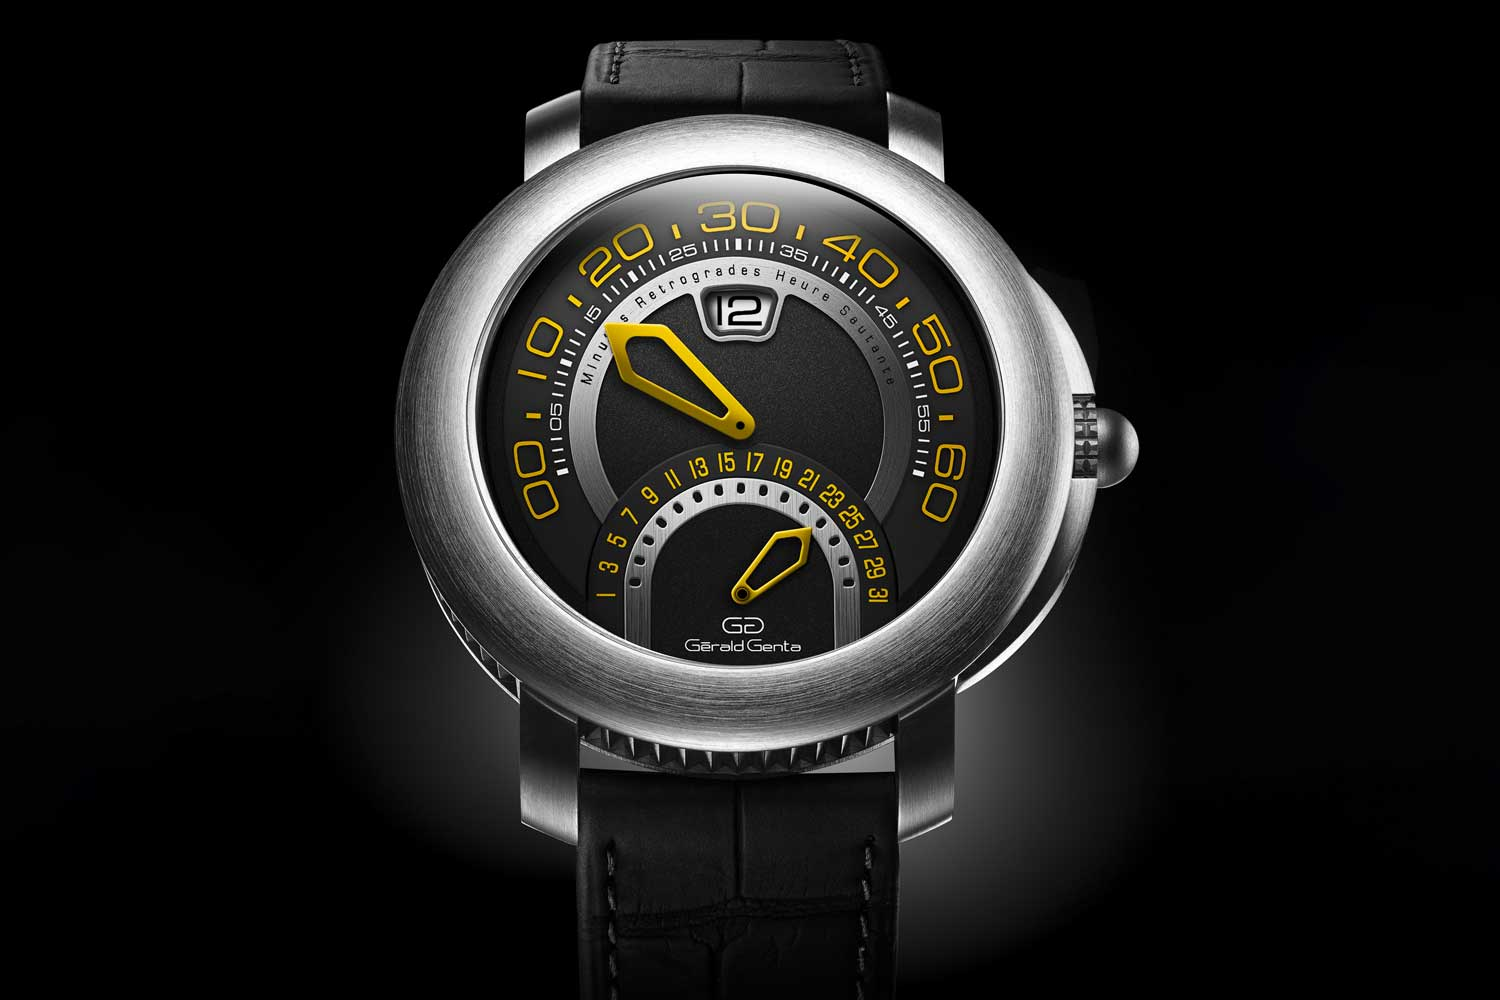 Jumping hours and retrograde minutes and date, signature details of Gérald Genta.